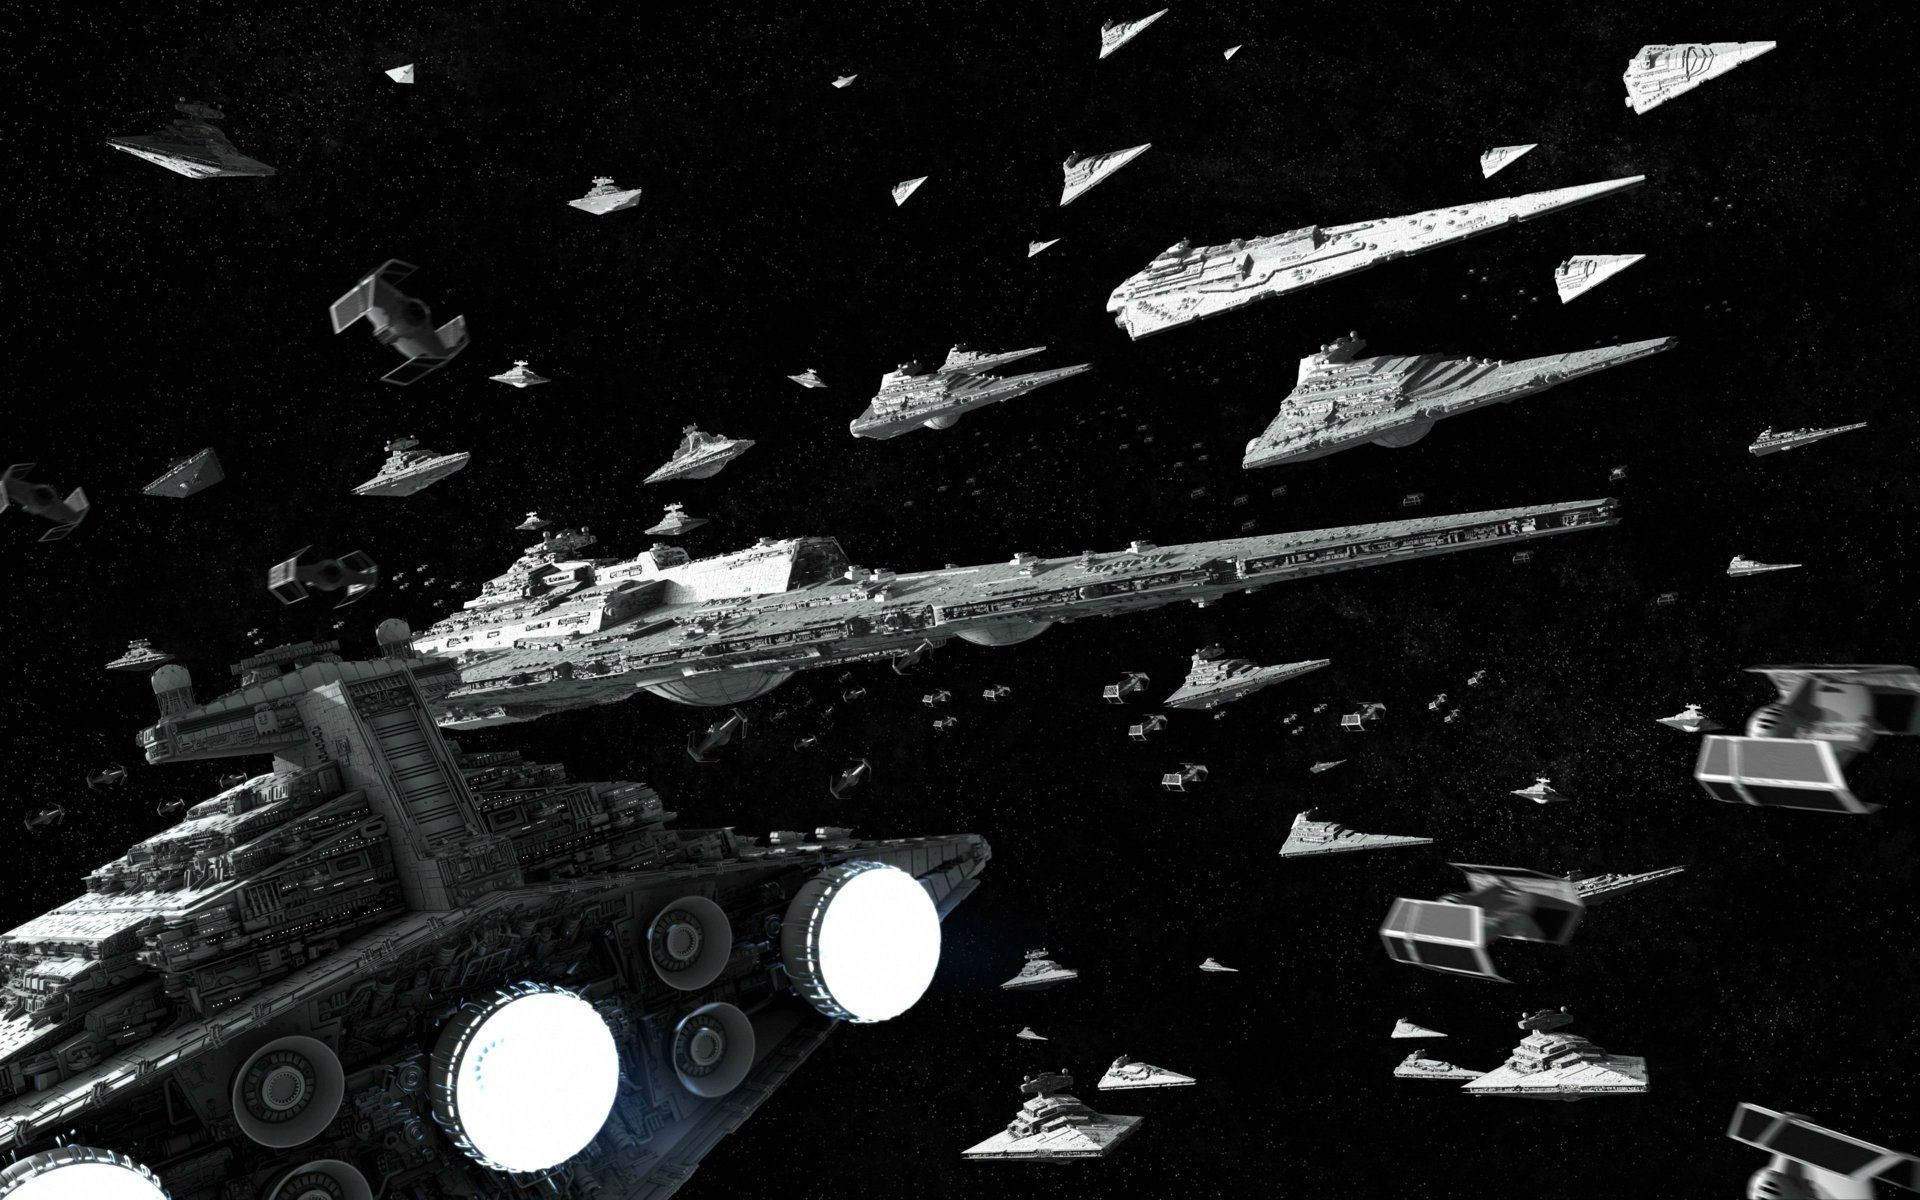 Star Wars Backgrounds Cool. #7167